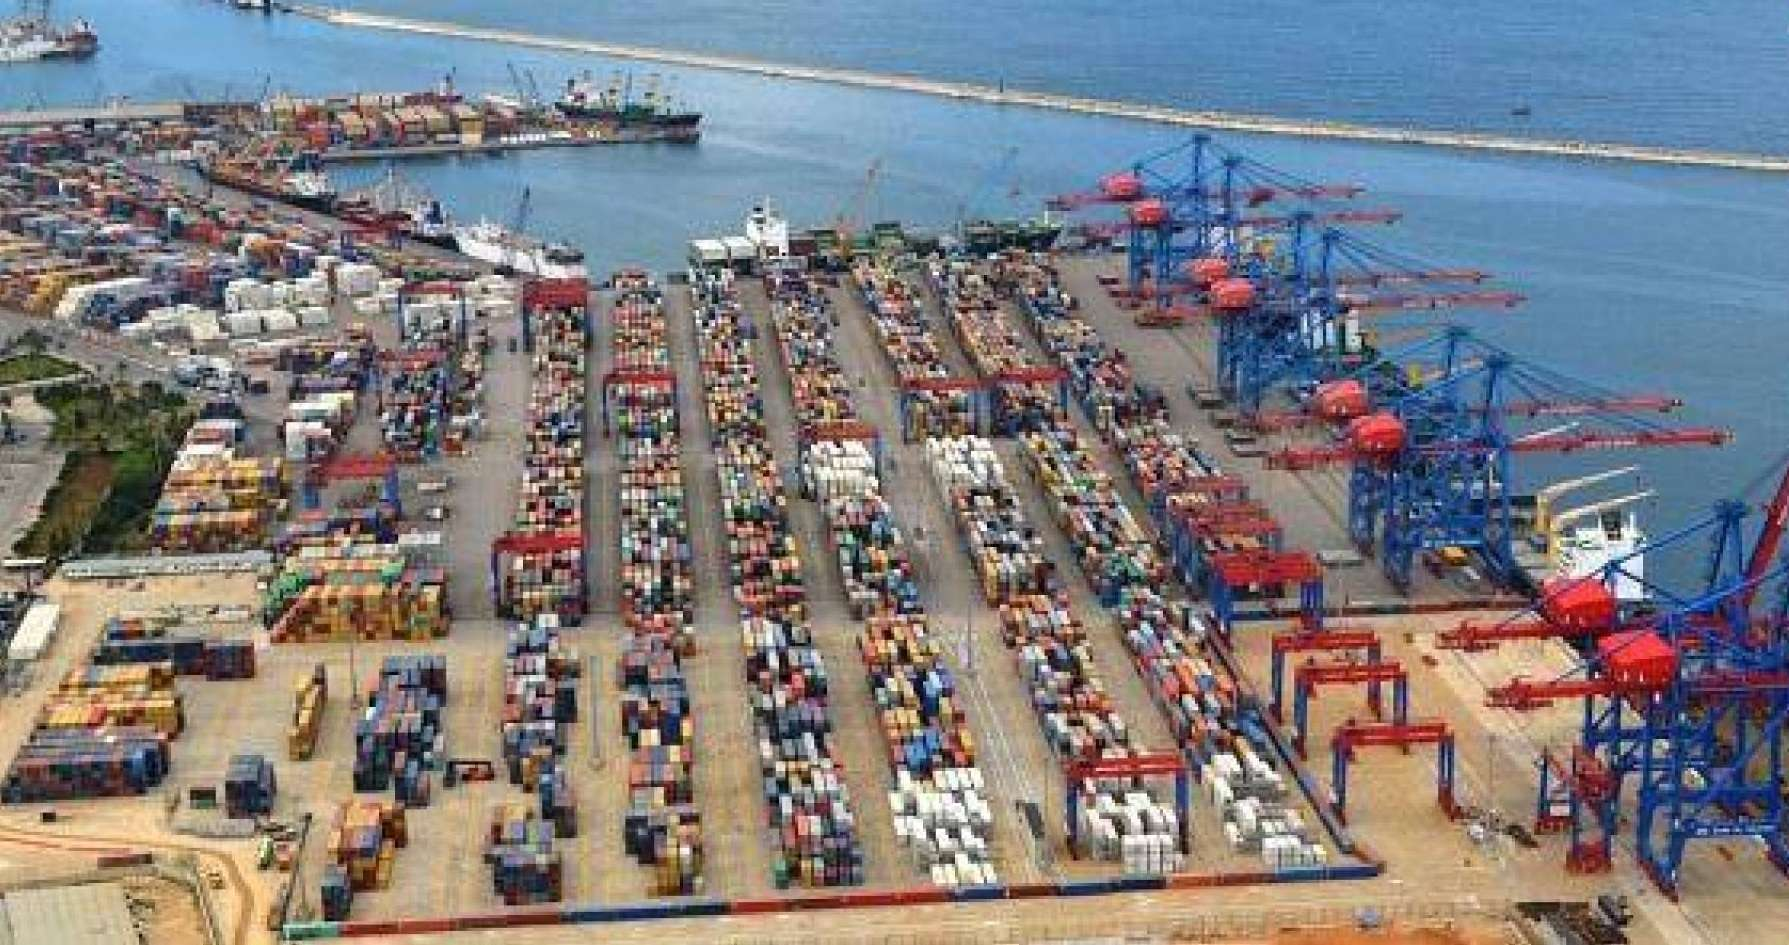 Thwarting a dangerous operation in the port of Beirut, Profile News - بروفايل نيوز